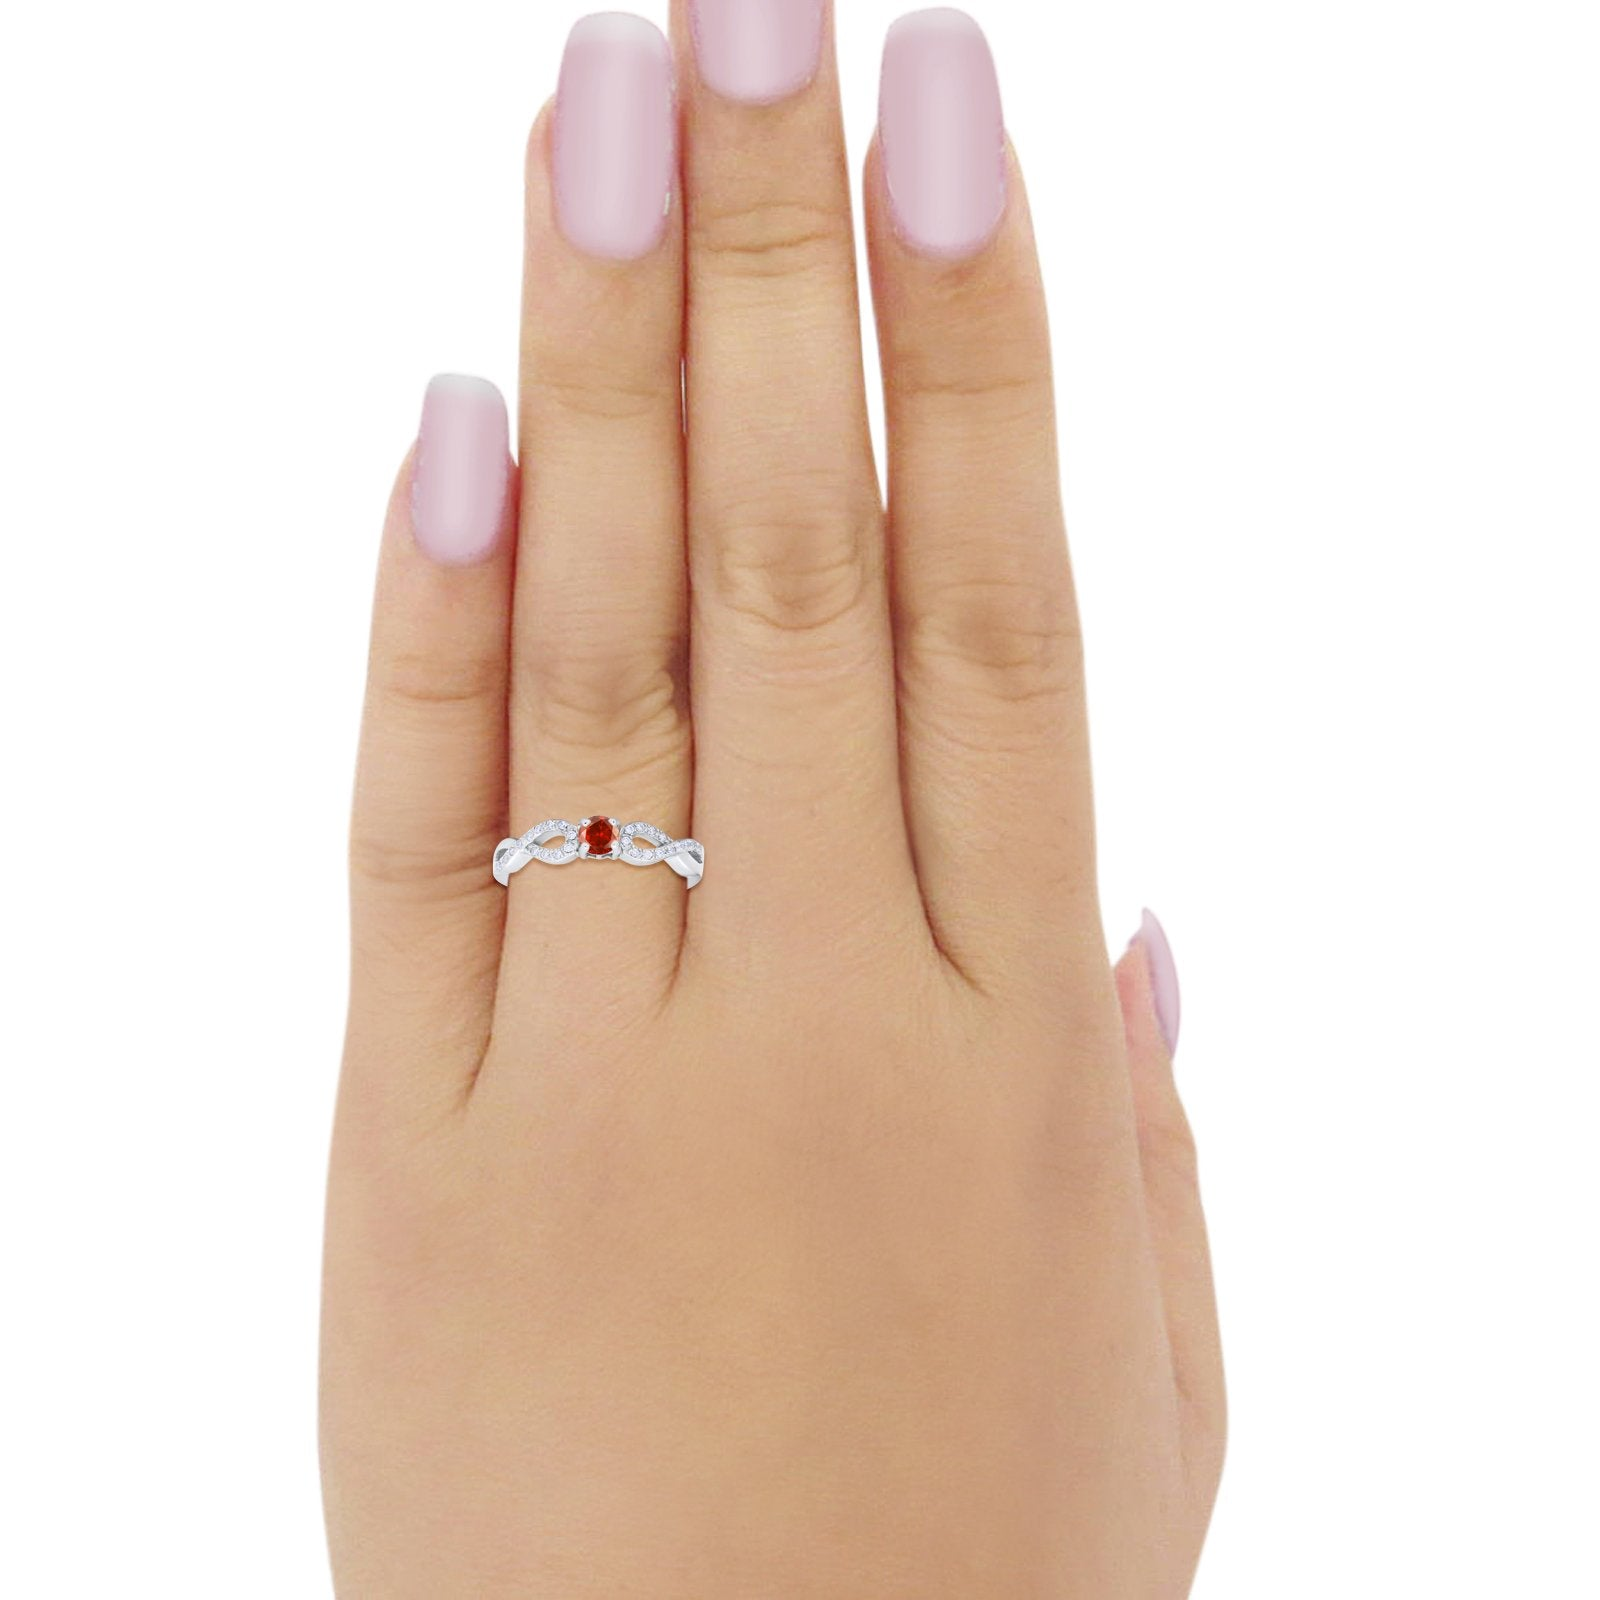 Petite Dainty Infinity Shank Ring Round Cubic Zirconia 925 Sterling Silver